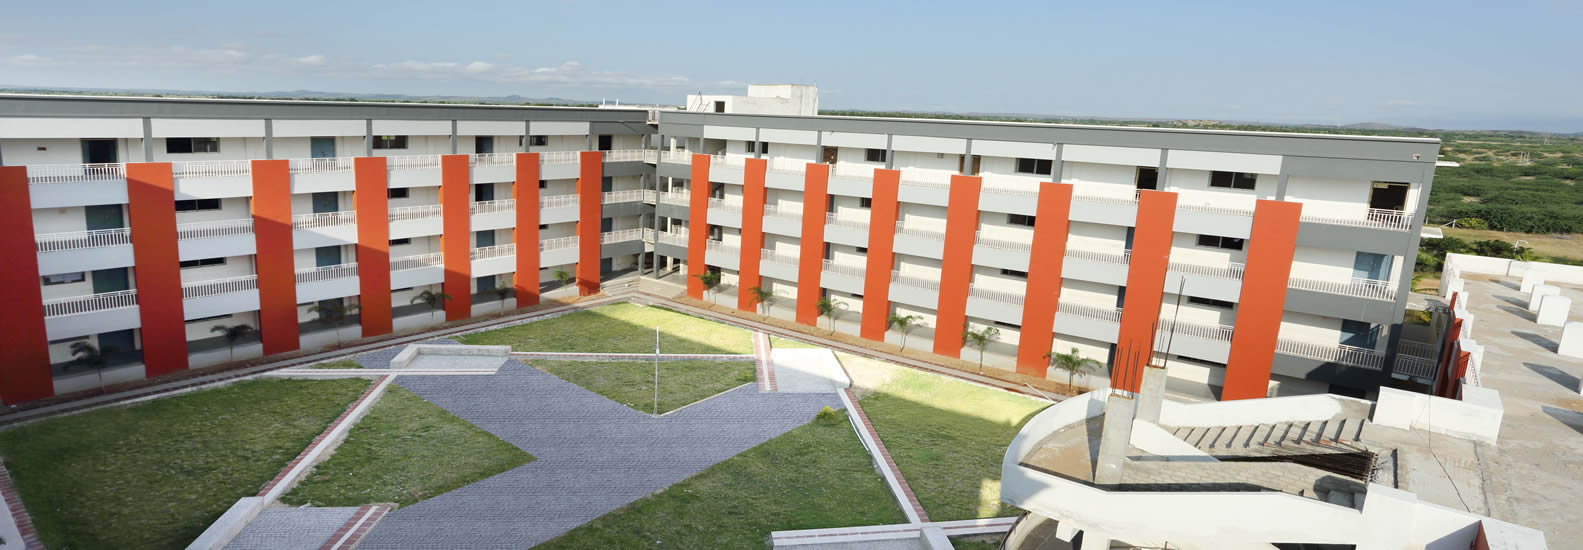 Chiranjeevi Reddy Institute of Engineering and Technology, Anantapur